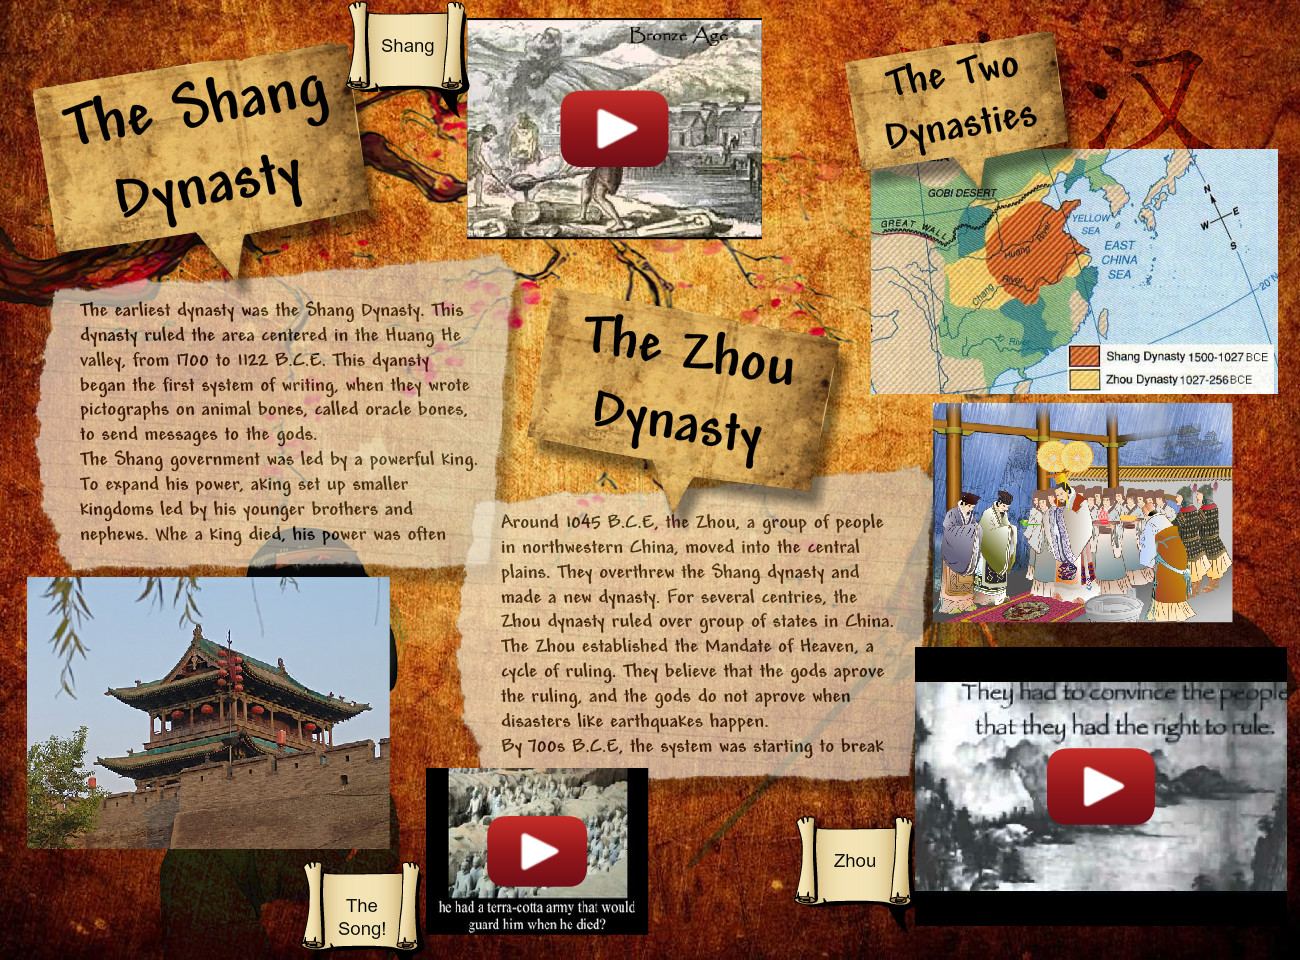 The Shang and Zhou Dynasty